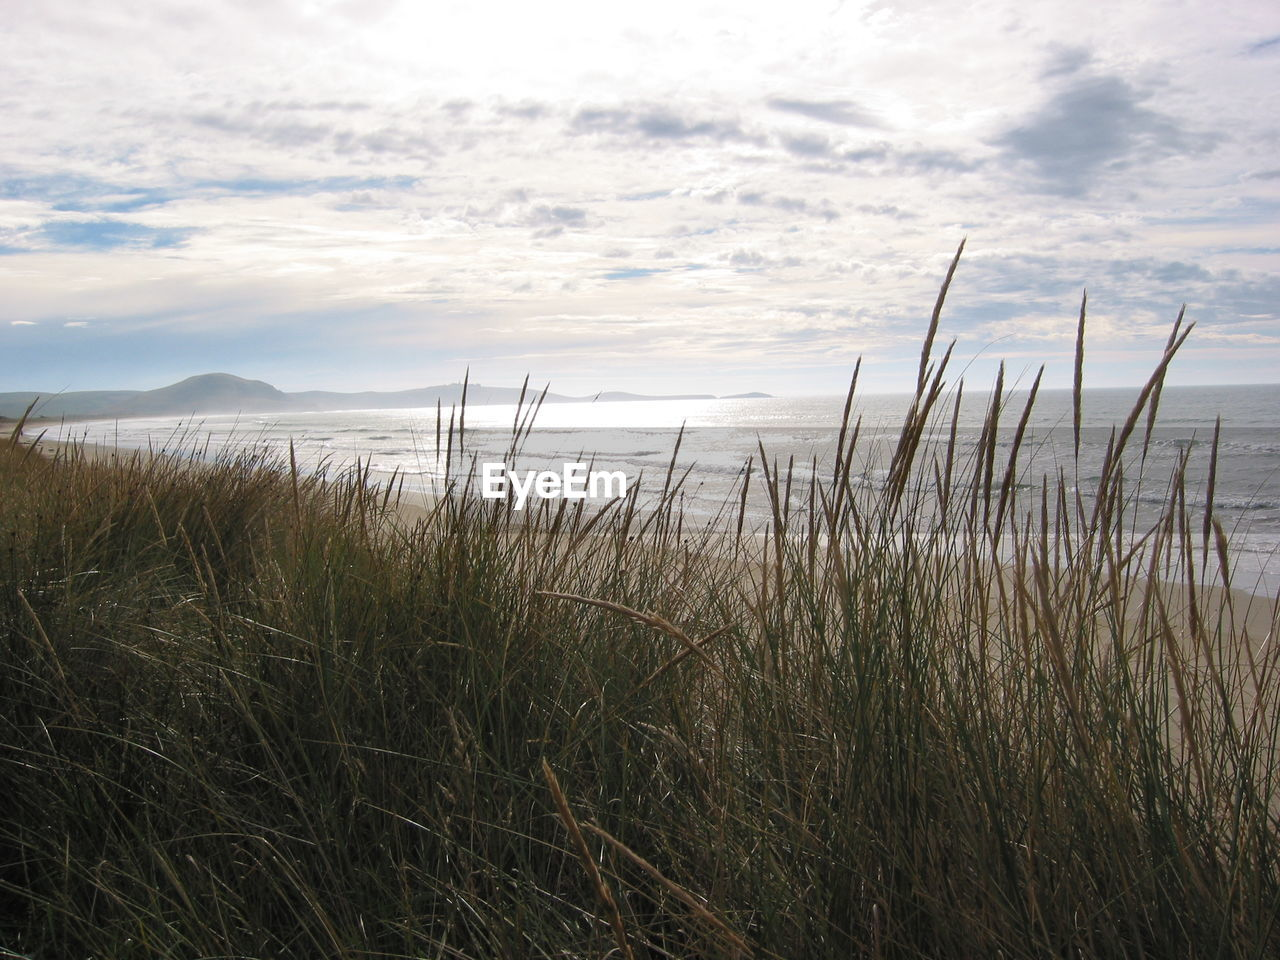 nature, tranquility, tranquil scene, scenics, beauty in nature, grass, growth, water, sky, sea, outdoors, day, no people, cloud - sky, beach, landscape, marram grass, horizon over water